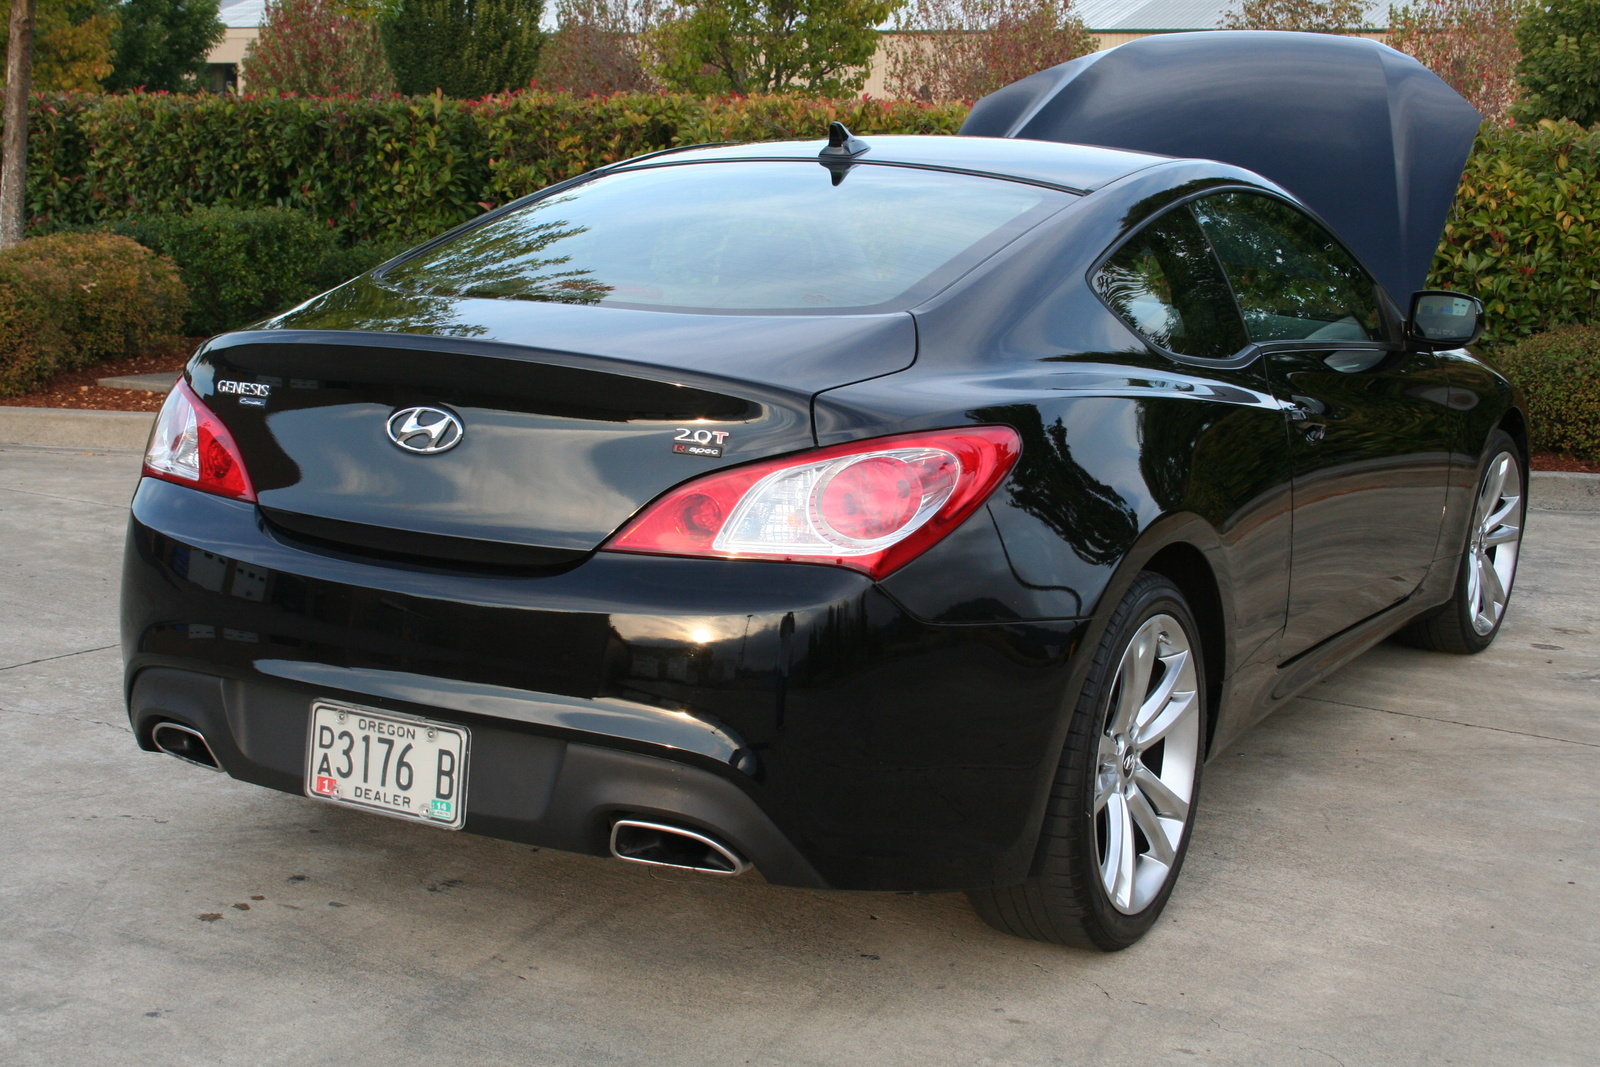 2010 hyundai genesis coupe exterior pictures cargurus. Black Bedroom Furniture Sets. Home Design Ideas